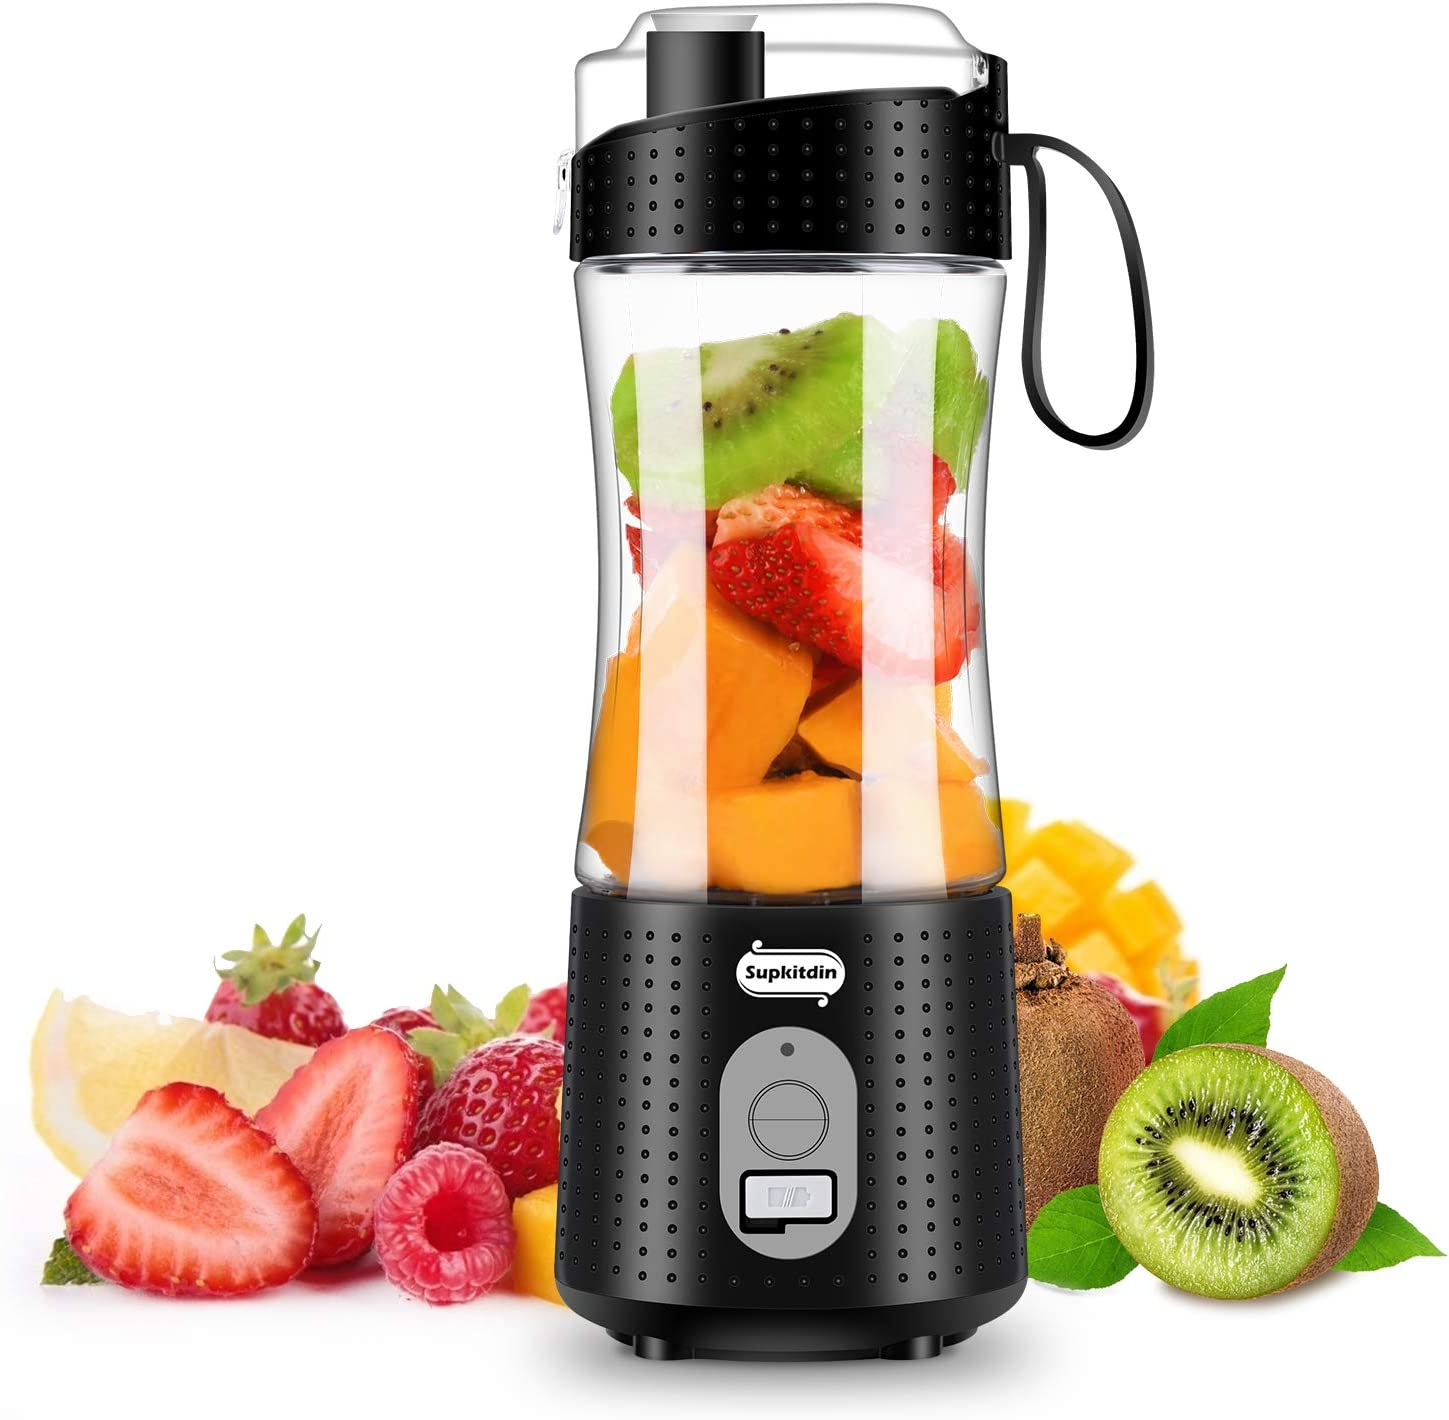 Portable Blender, Supkitdin Personal Size Blender for Smoothies, Juice and Shakes, Mini Blender with Powerful Motor 4000mAh Rechargeable Battery, Six Blades, for Home, Travel, Office (Black)